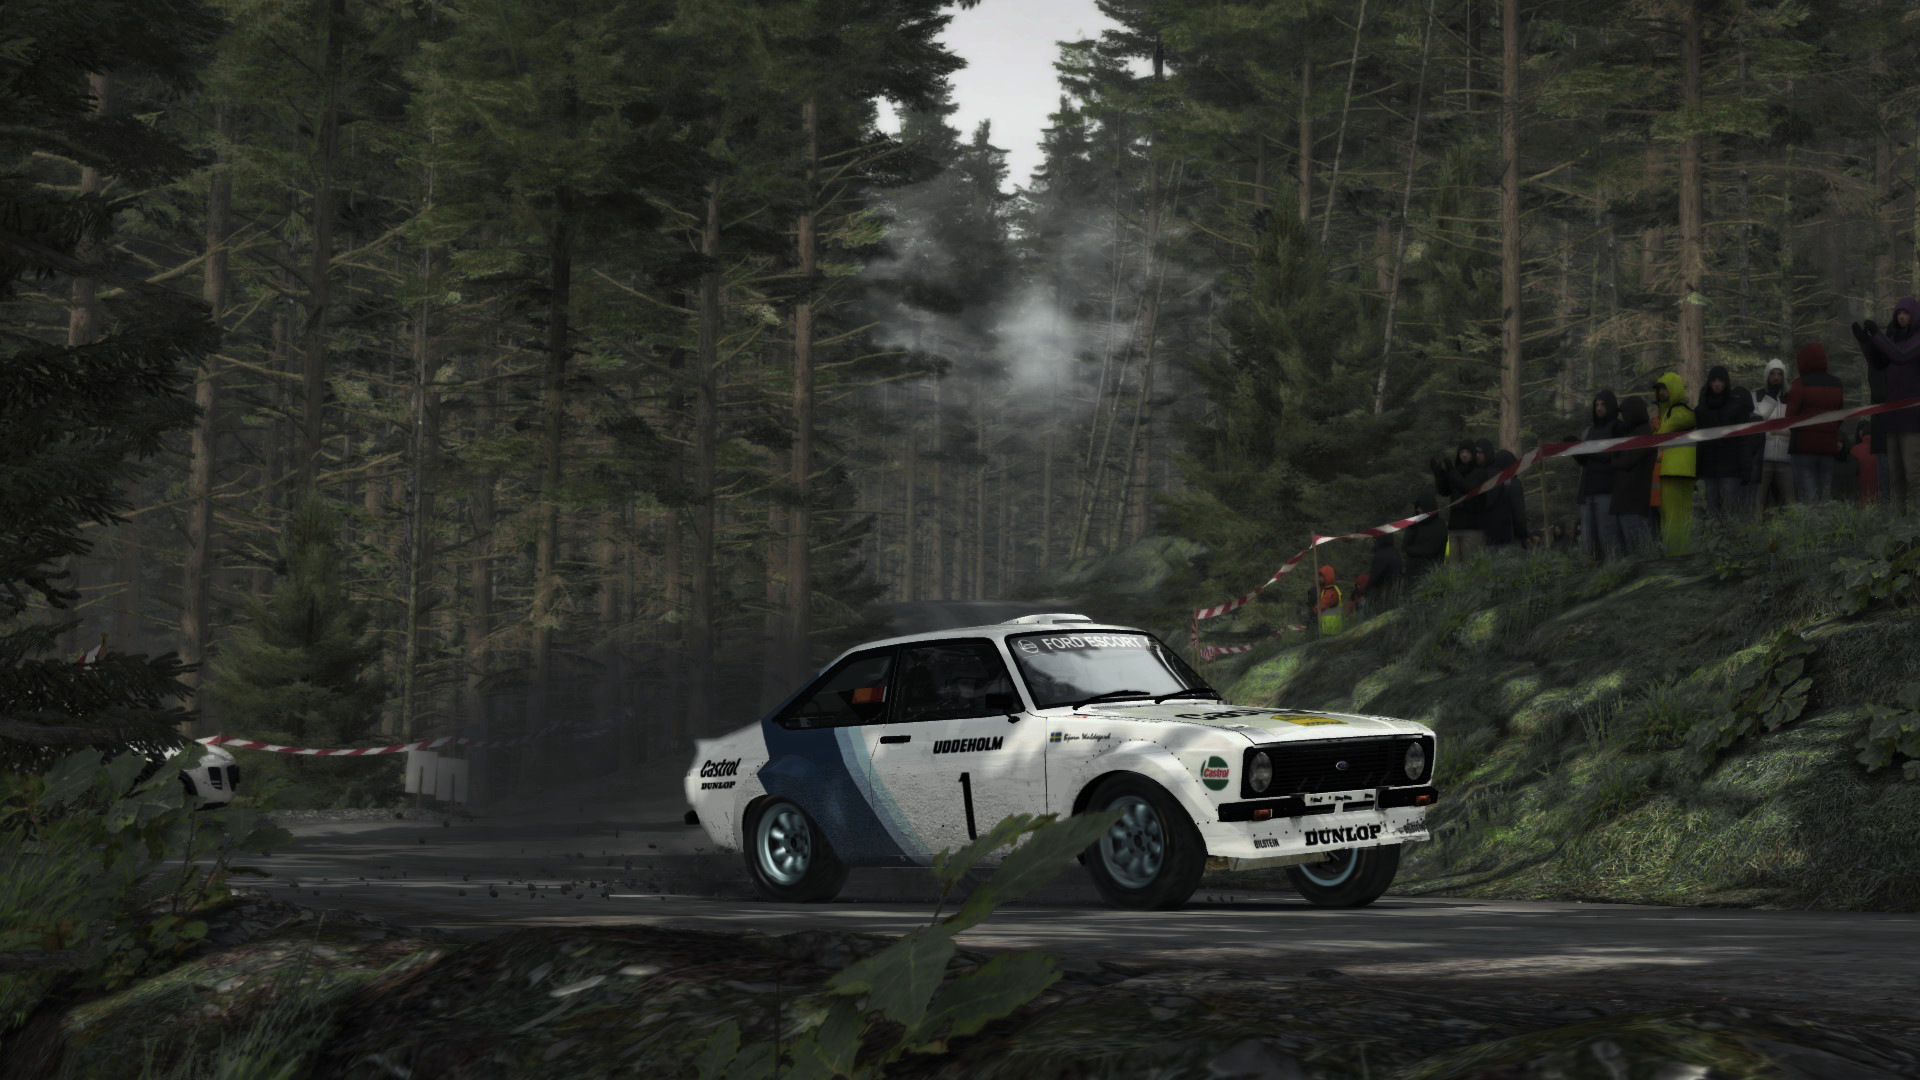 Escort Mk II in Wales (Sweet Lamb)